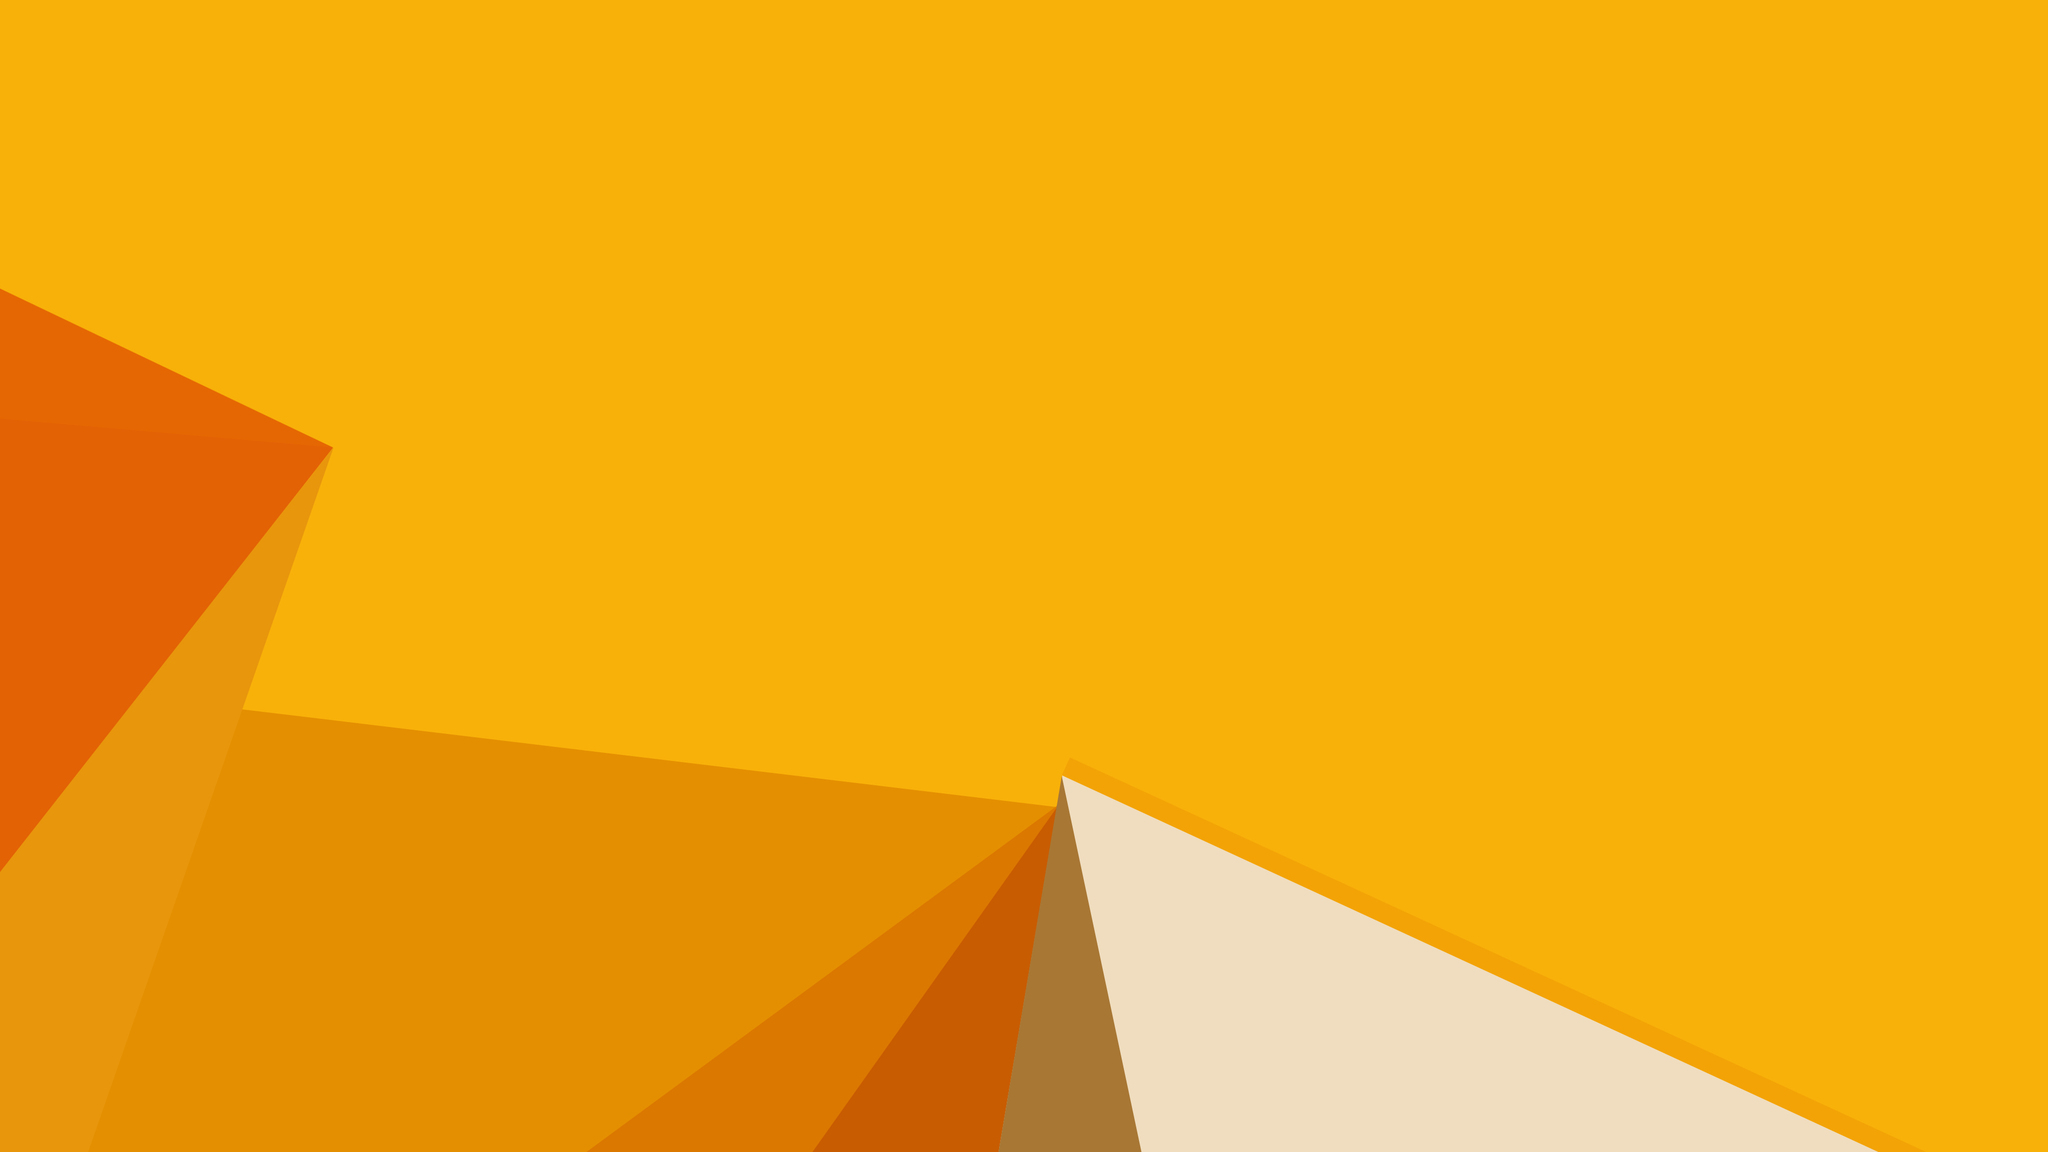 abstract-orange-shapes-or.jpg